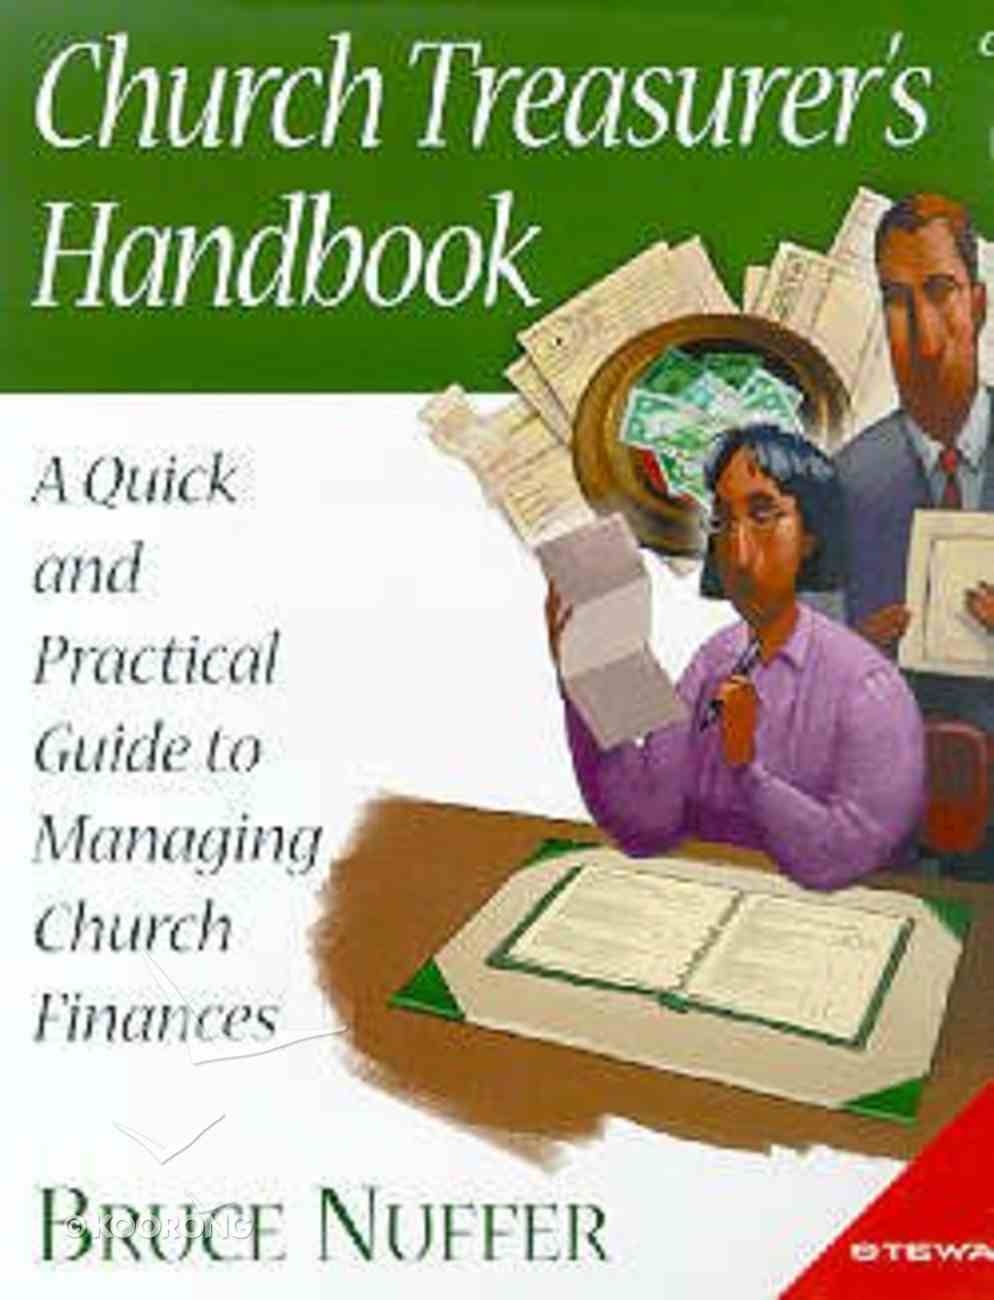 Church Treasurer's Handbook (Includes CD) (Lifestream Resources Kits Series) Paperback